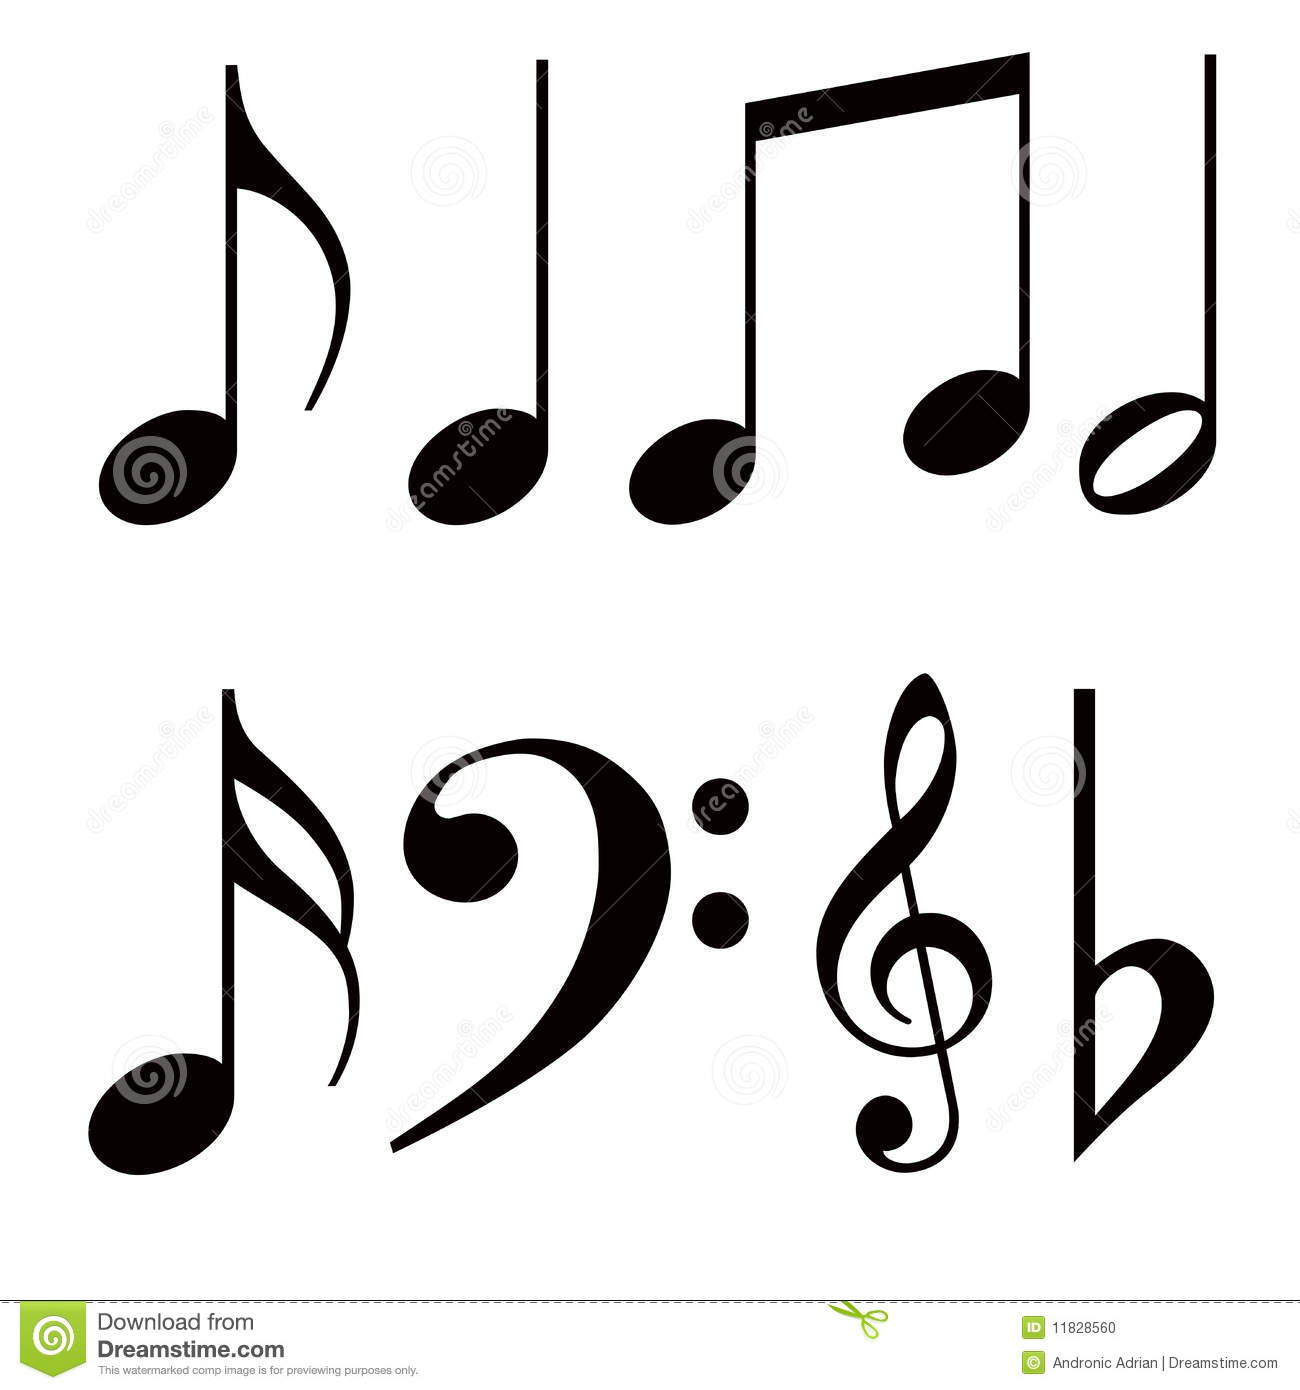 Music notes stock illustration. Image of black, play